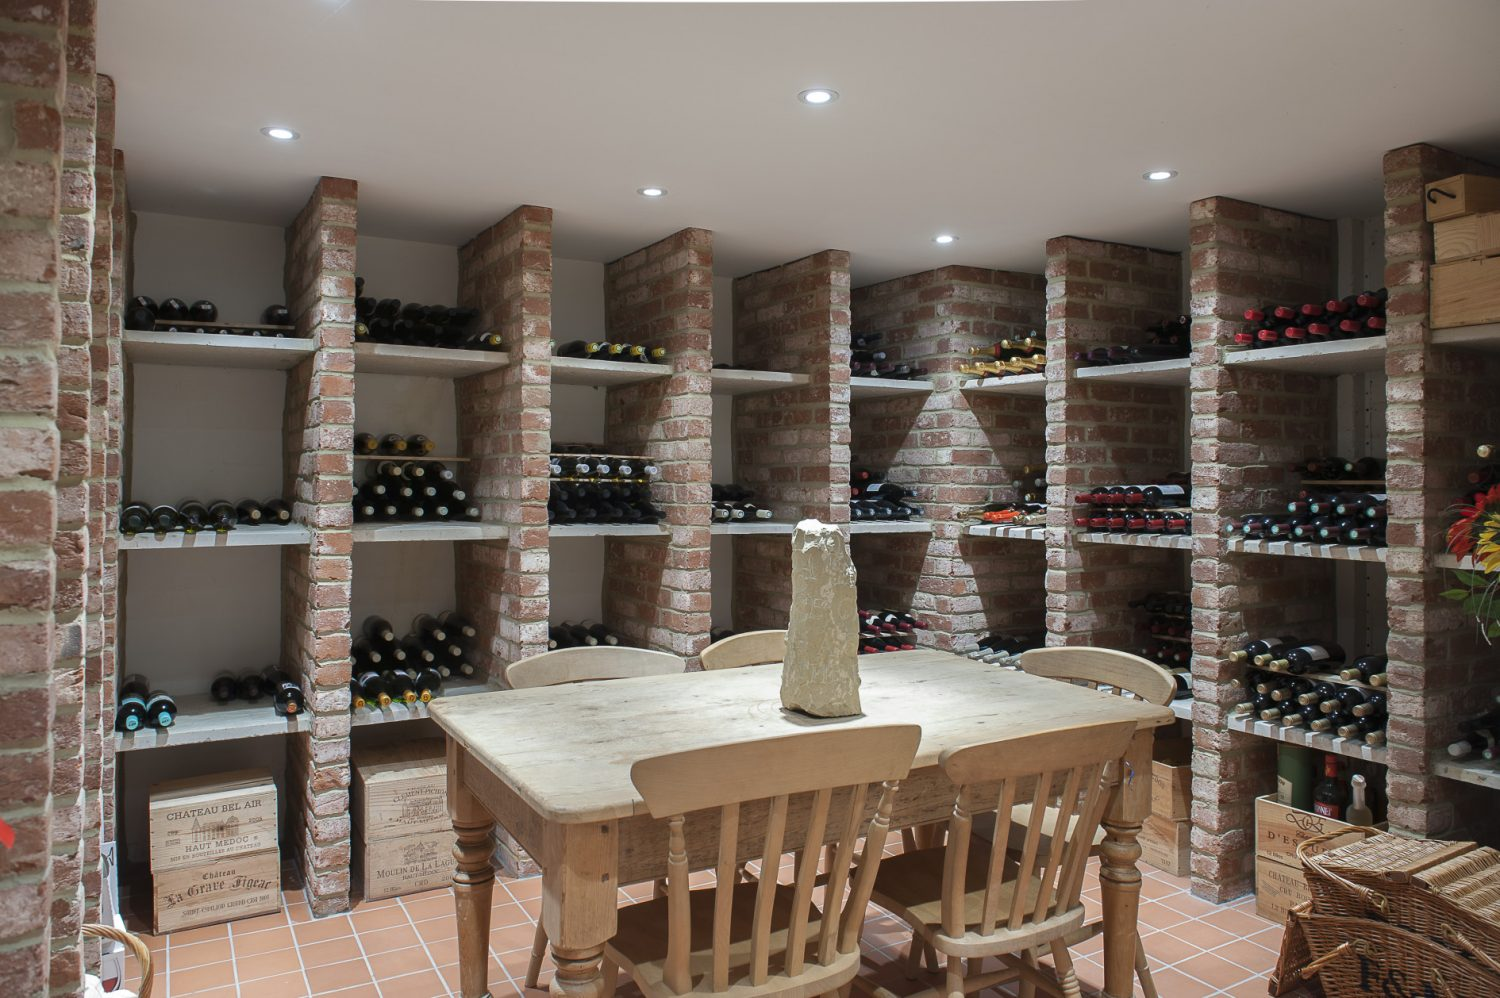 Tucked away down a discreet staircase at the back of the house, there is every wine-lover's dream; a vast, cool cellar built from brick and stone, where Julian keeps a prized collection of wine. A rustic table is the perfect spot for Julian and fellow wine-lovers to sample favourite wines